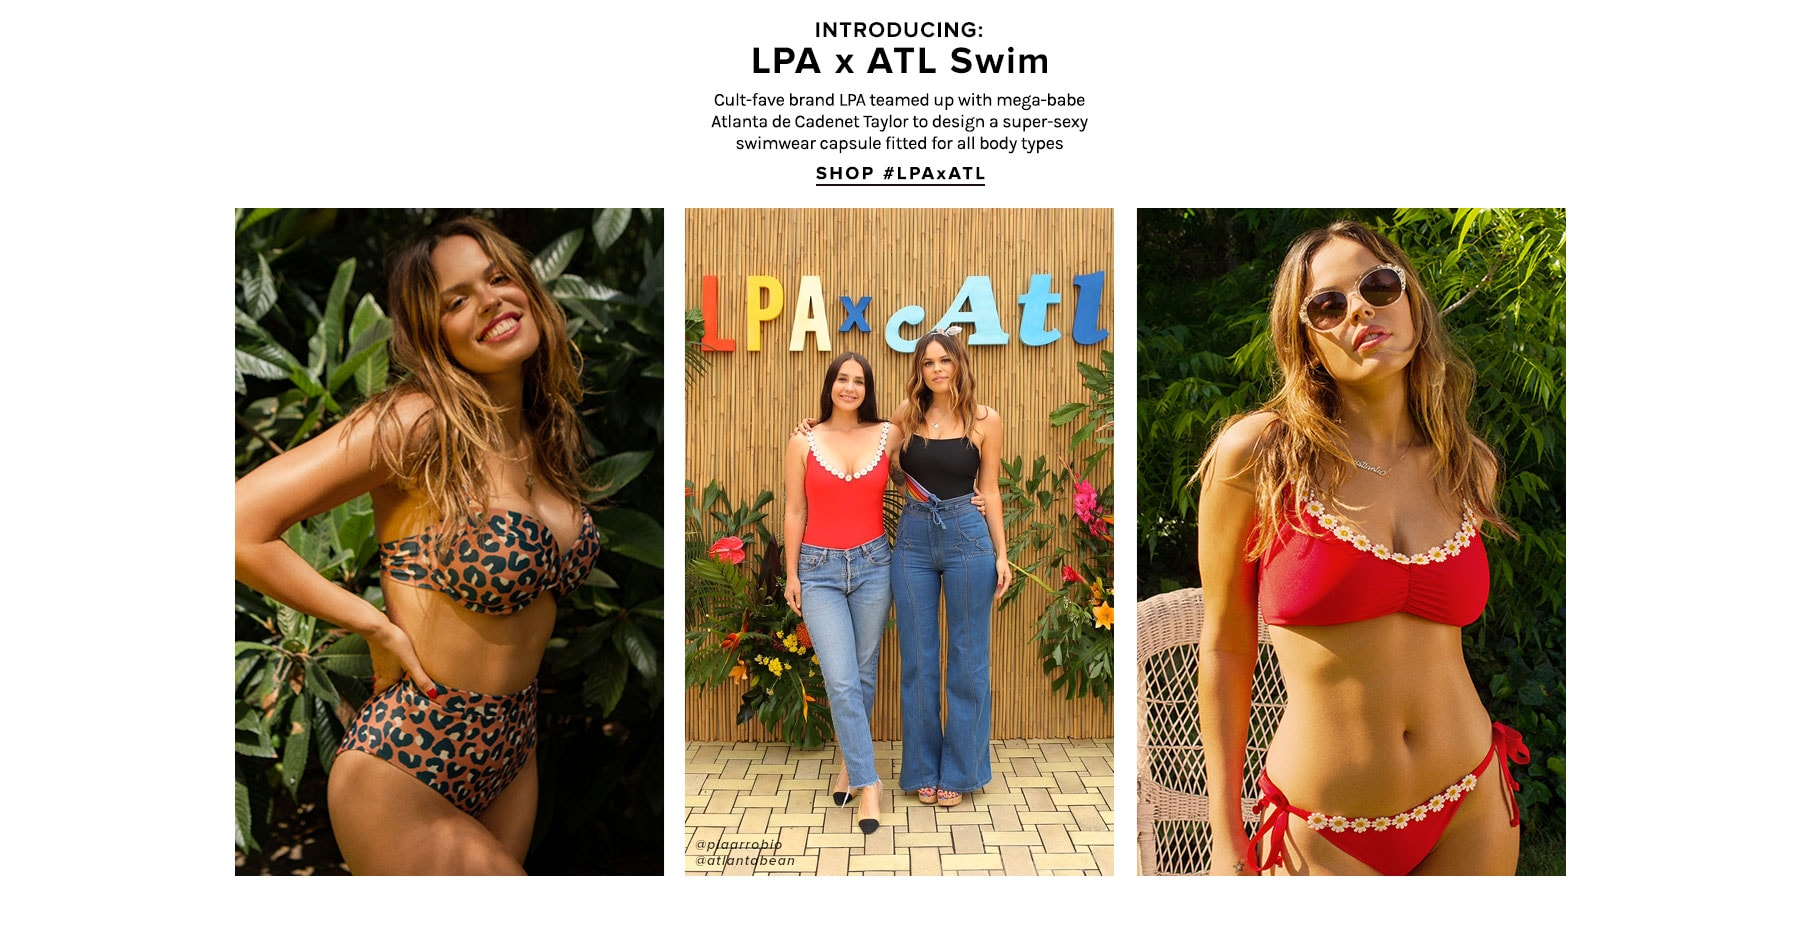 Introducing: LPA x ATL Swim. Cult-fave brand LPA teamed up with mega-babe Atlanta de Cadenet to design a super-sexy swimwear capsule fitted for all types of boobs, booties & bodies . Shop LPAxATL.